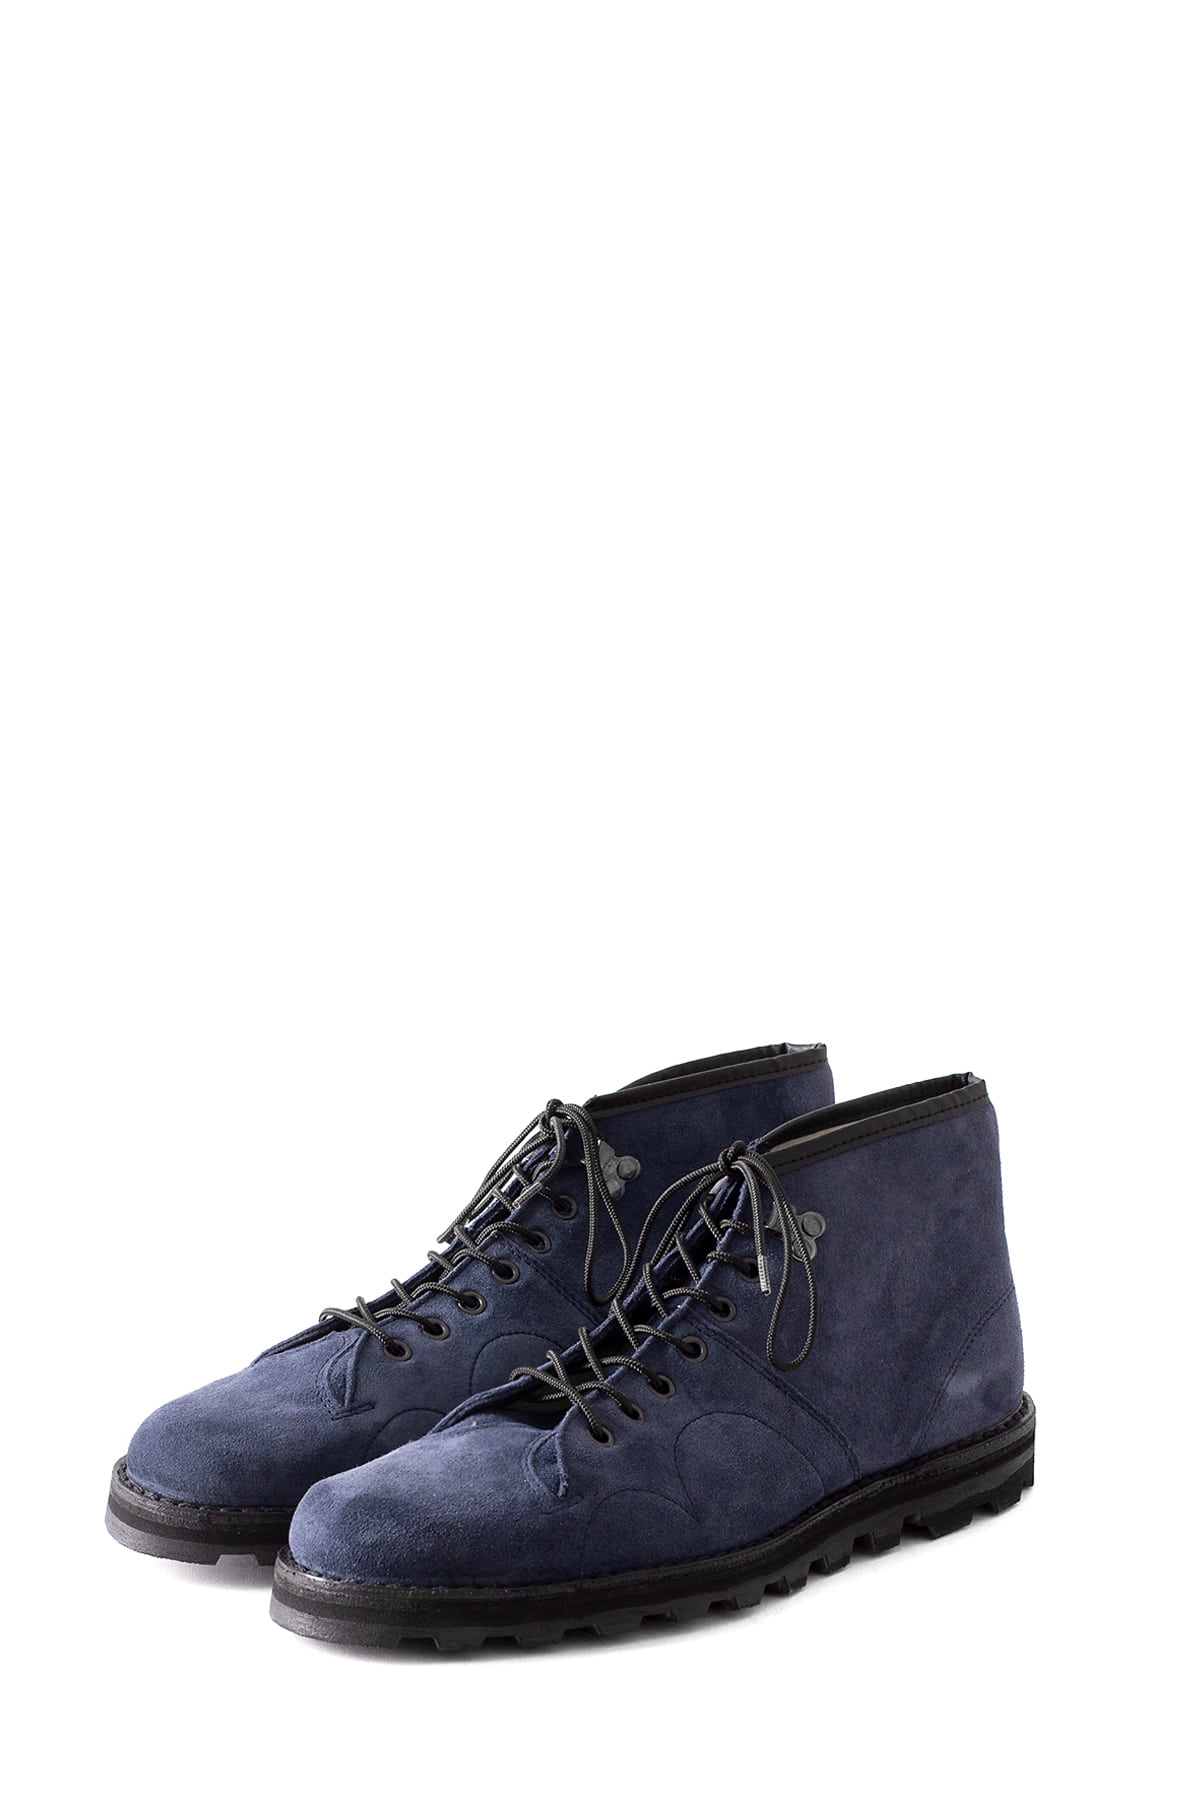 REPRODUCTION OF FOUND : Czecho Slovakia Military Boots 4100S (Navy Suede)